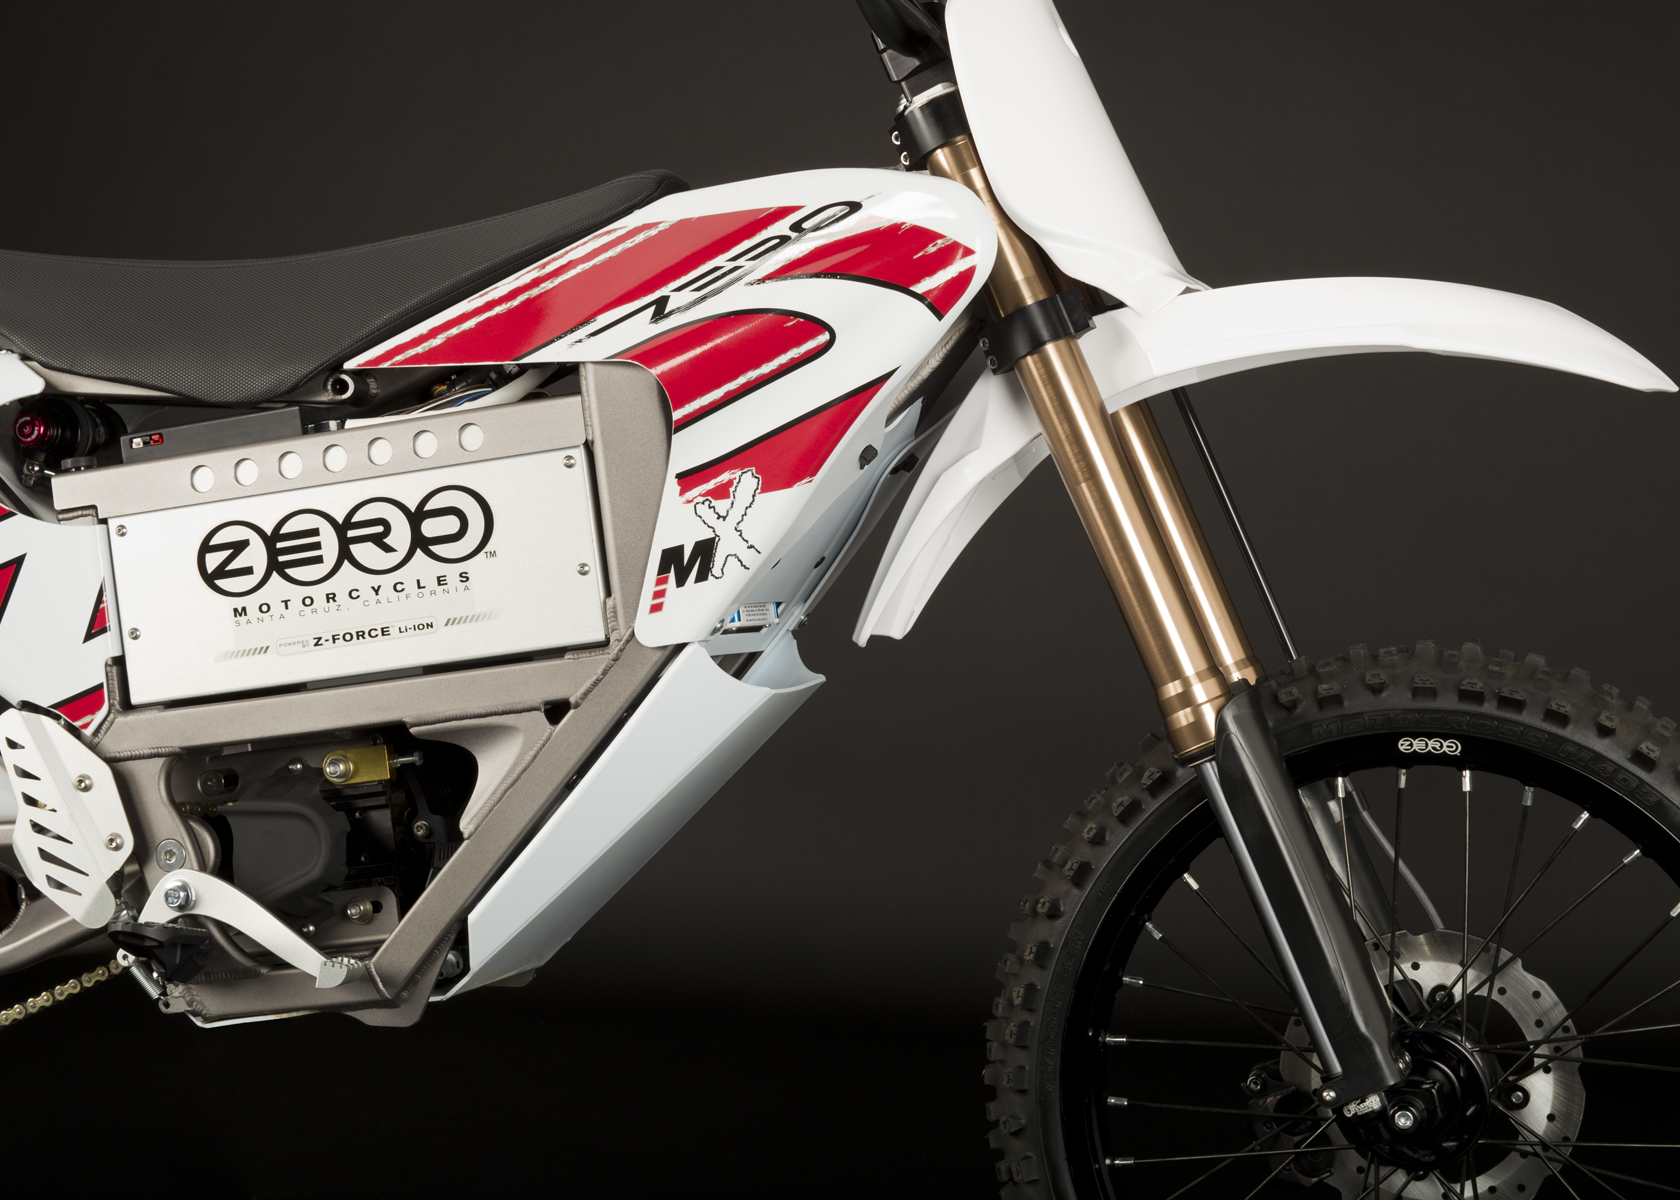 2011 Zero MX Electric Motorcycle: Front Fork